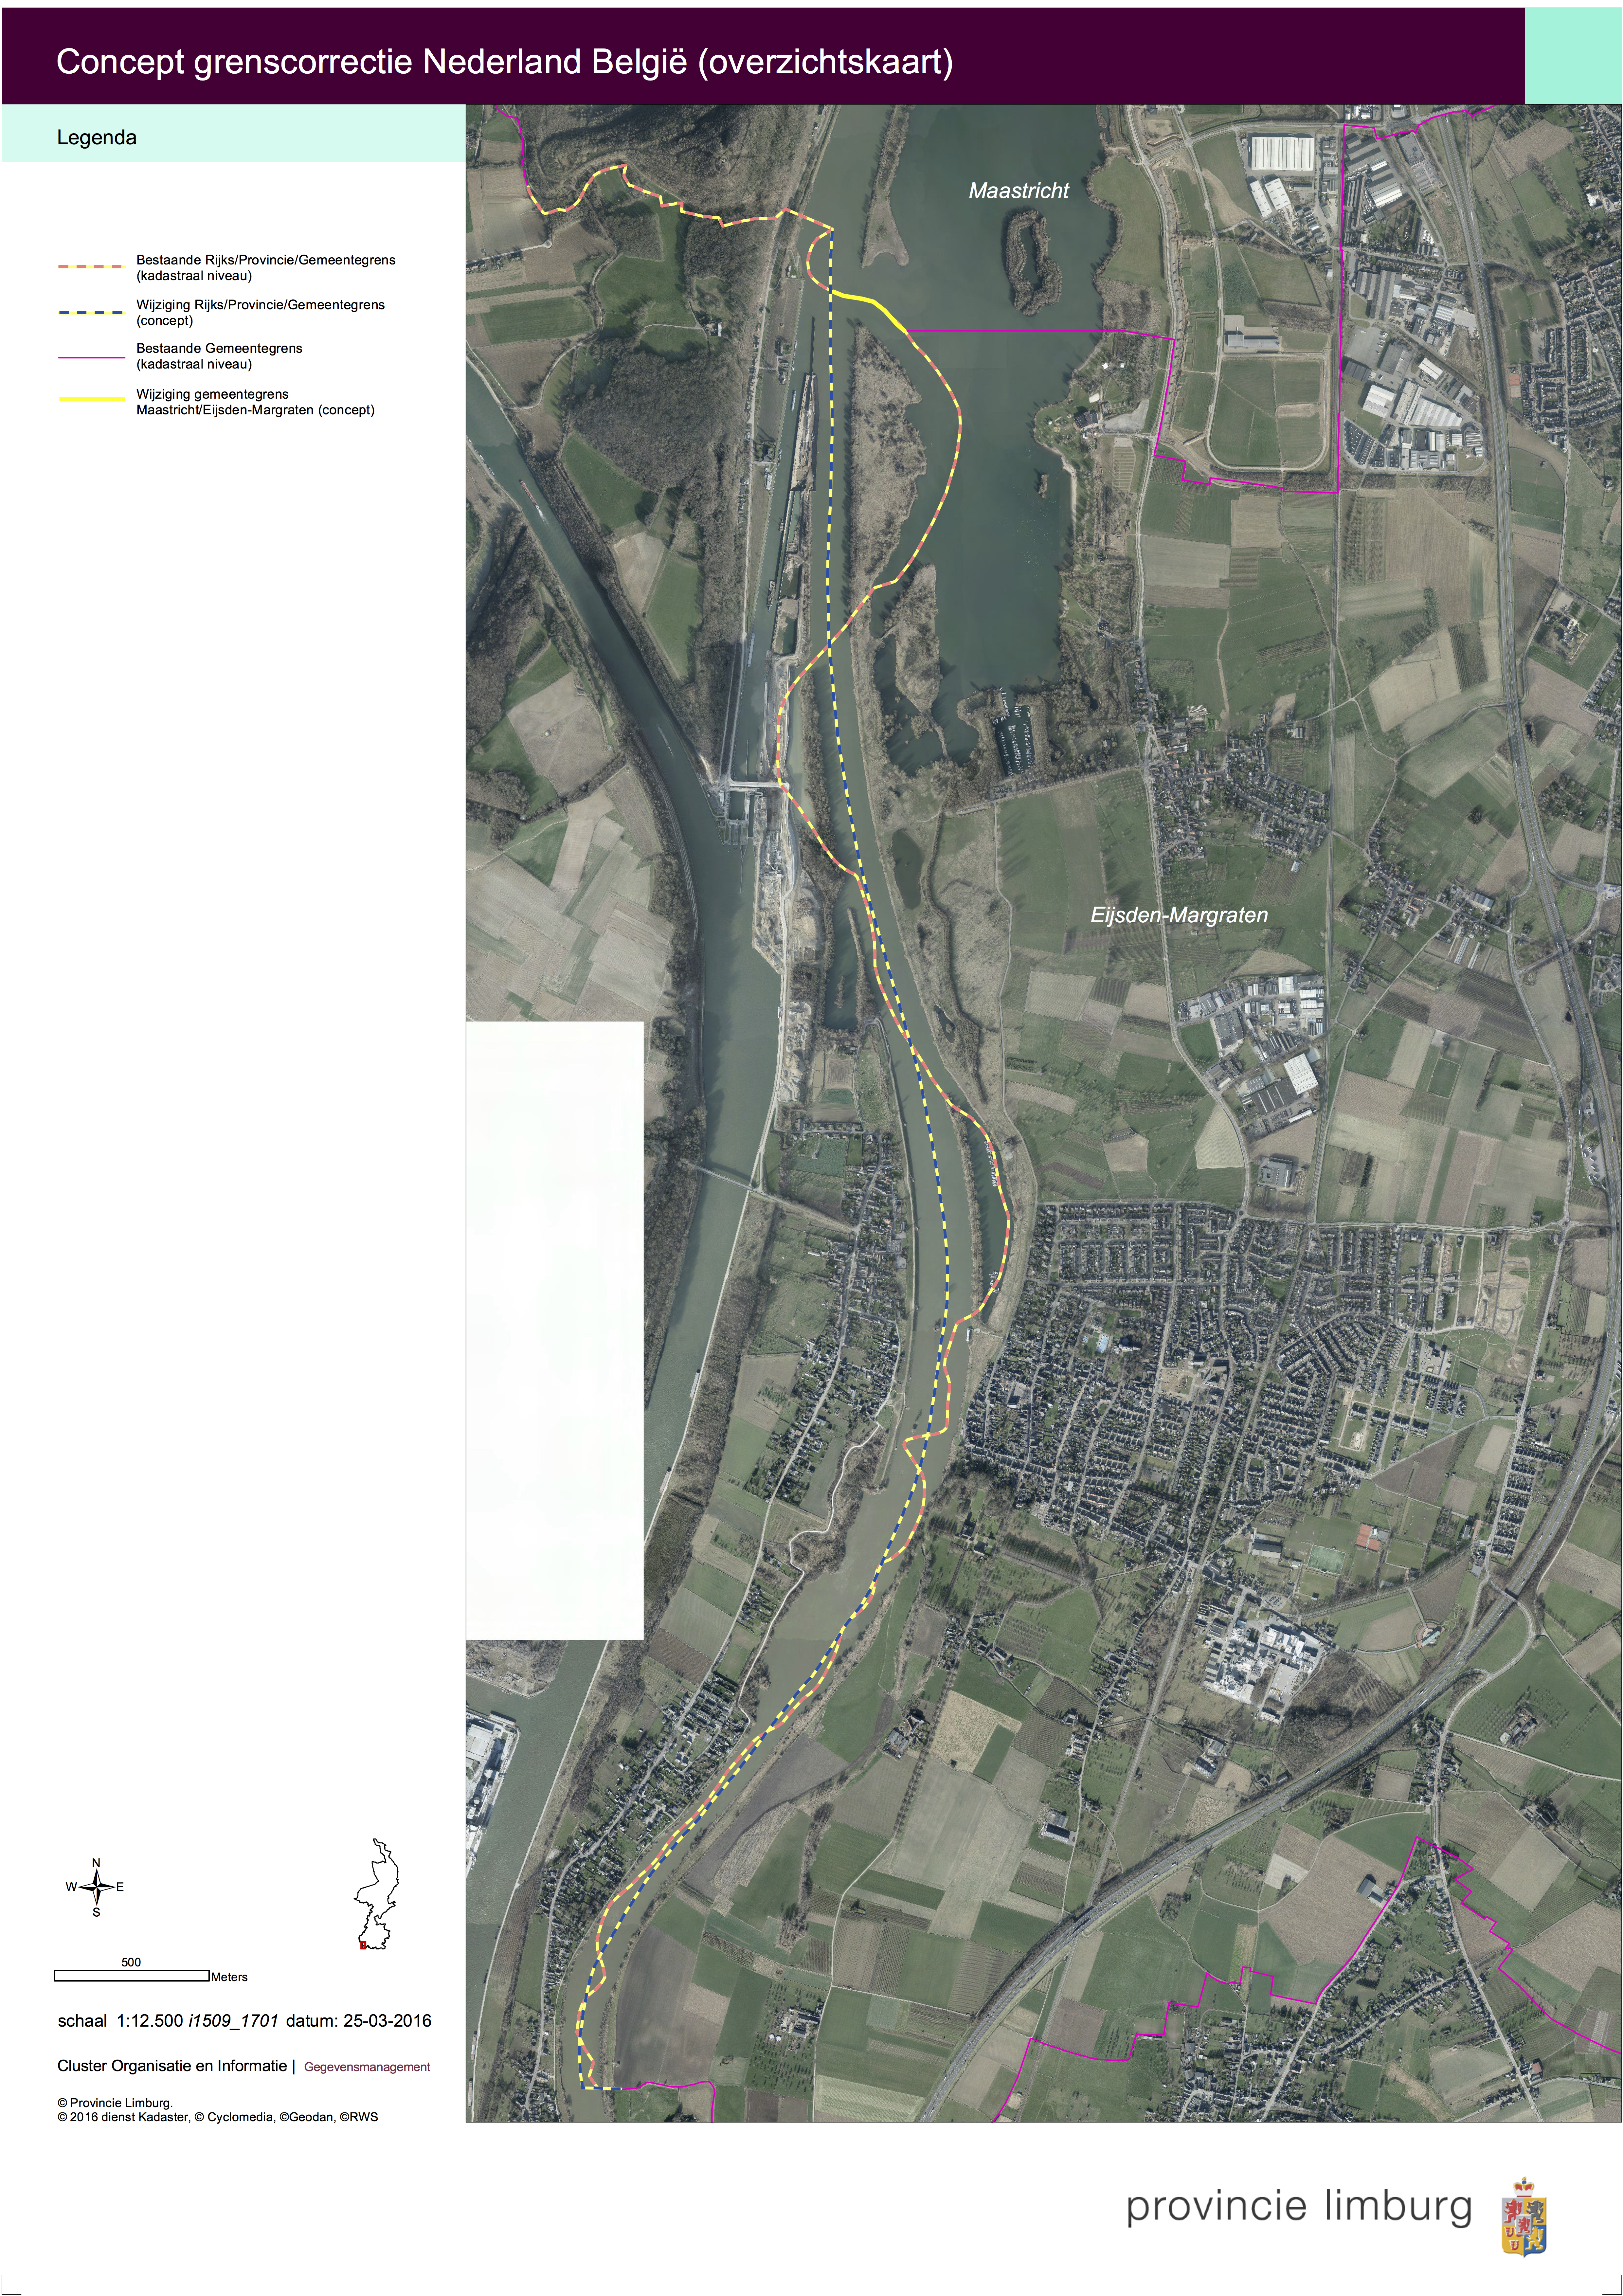 Belgium And The Netherlands Swap Land Without A Single Shot Being - Us border zone map